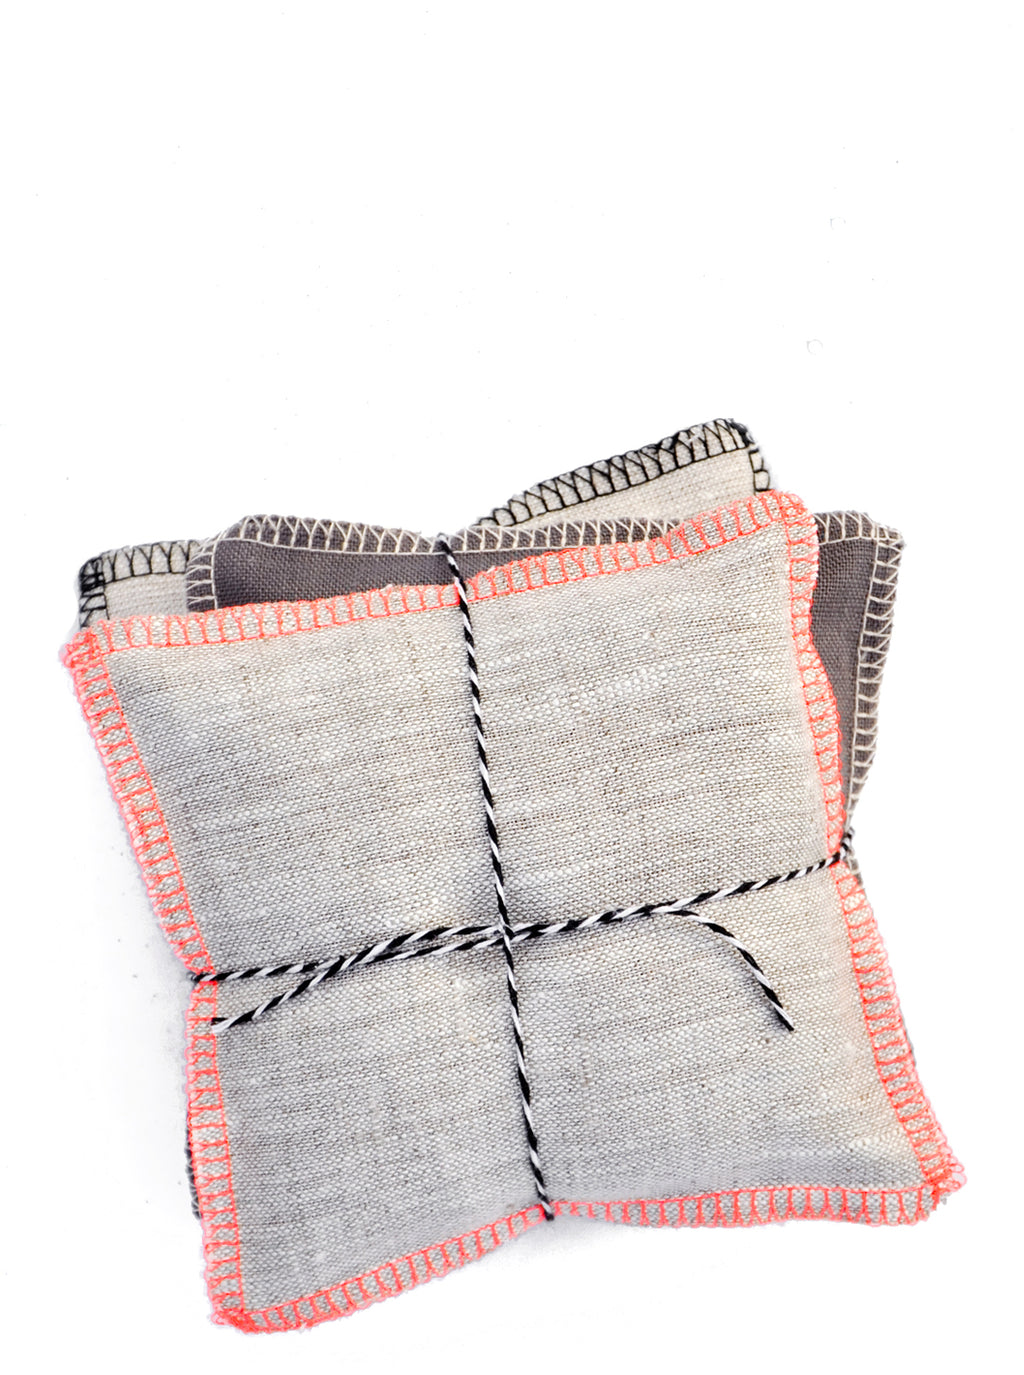 Neon Neutral / Balsam: Color Stack Sachet Set in Neon Neutral / Balsam - LEIF